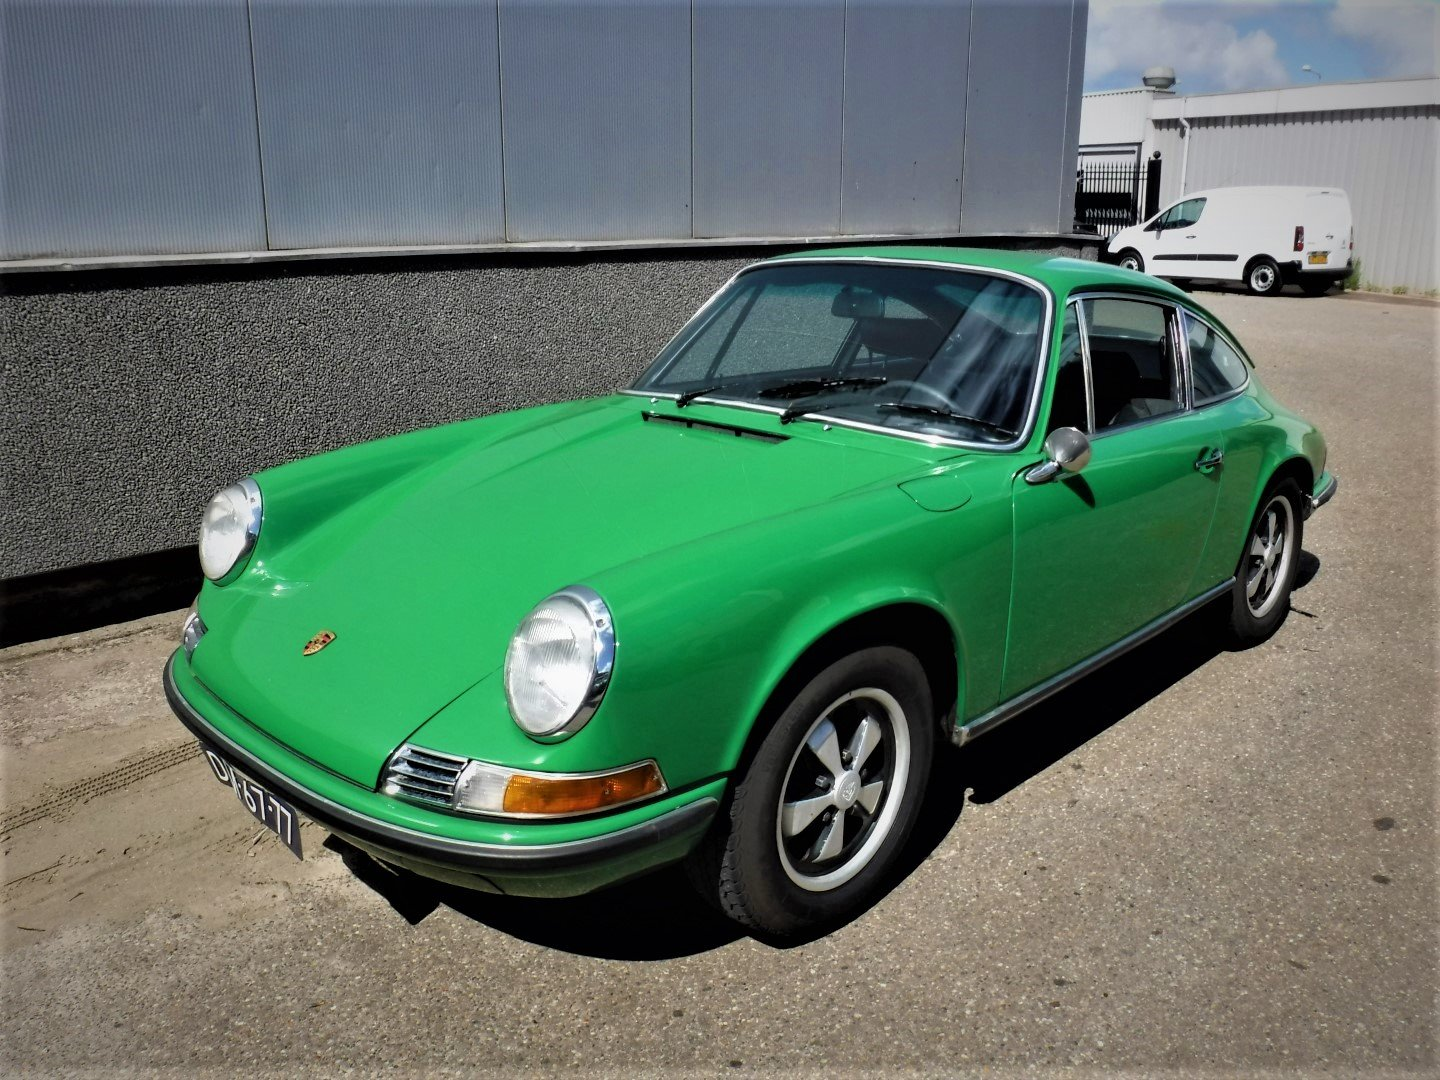 Porsche 911 T  1970   6 cyl.  2.2ltr. For Sale (picture 1 of 6)